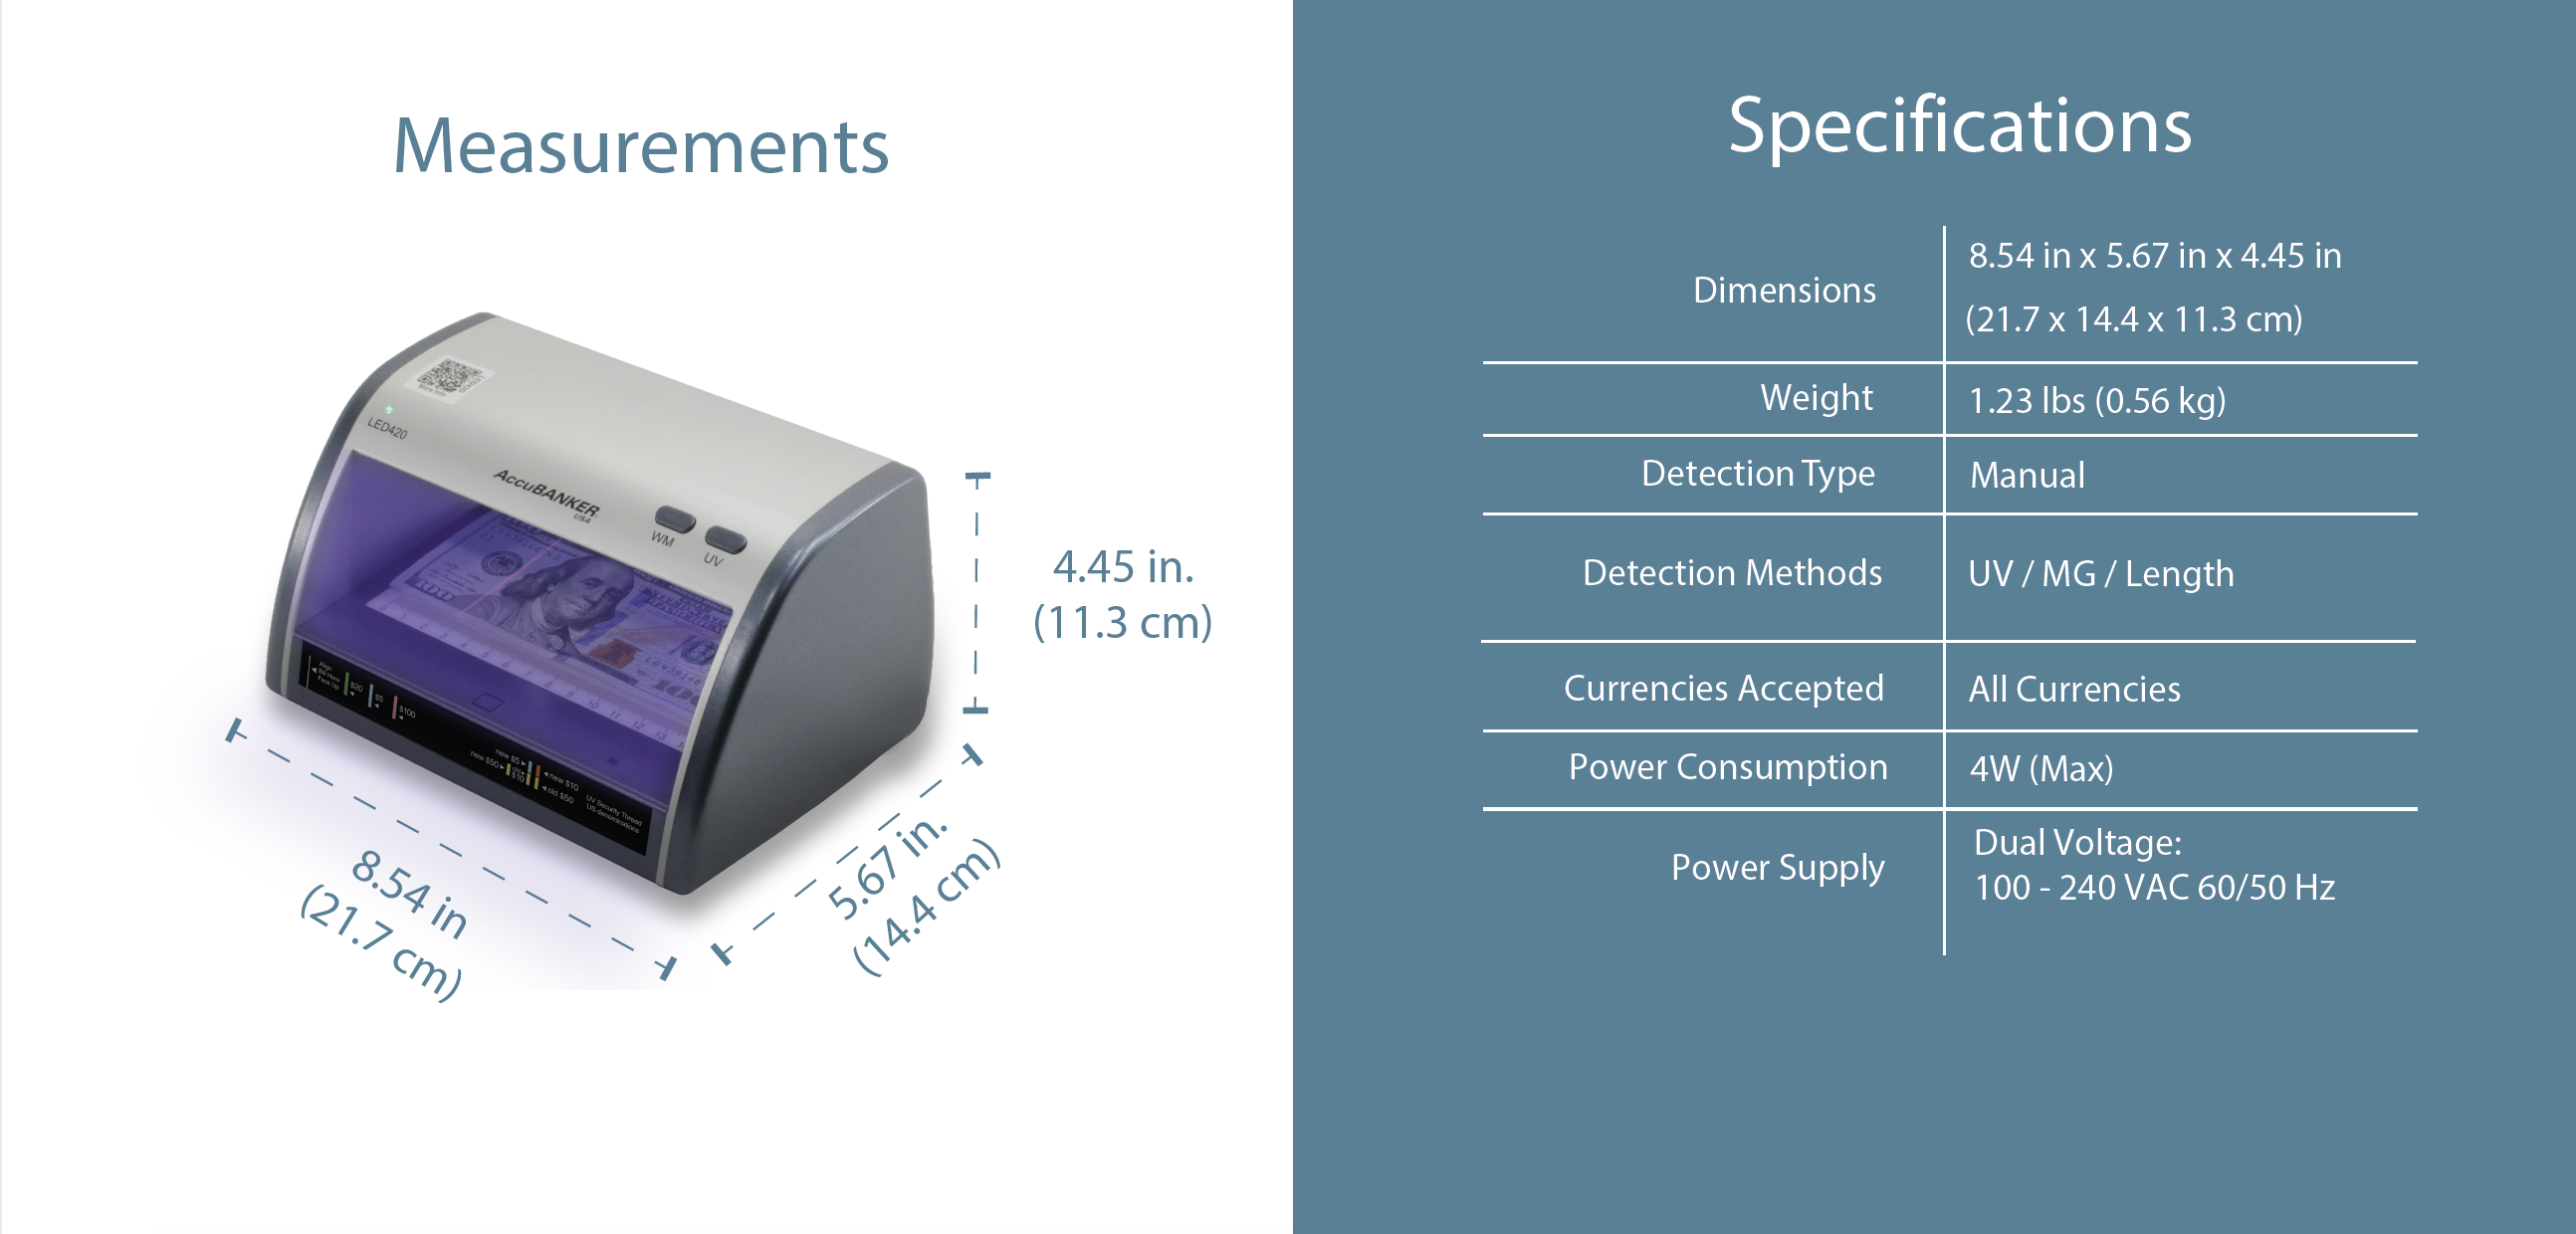 LED420 Cash + Card Detector Features & Specifications